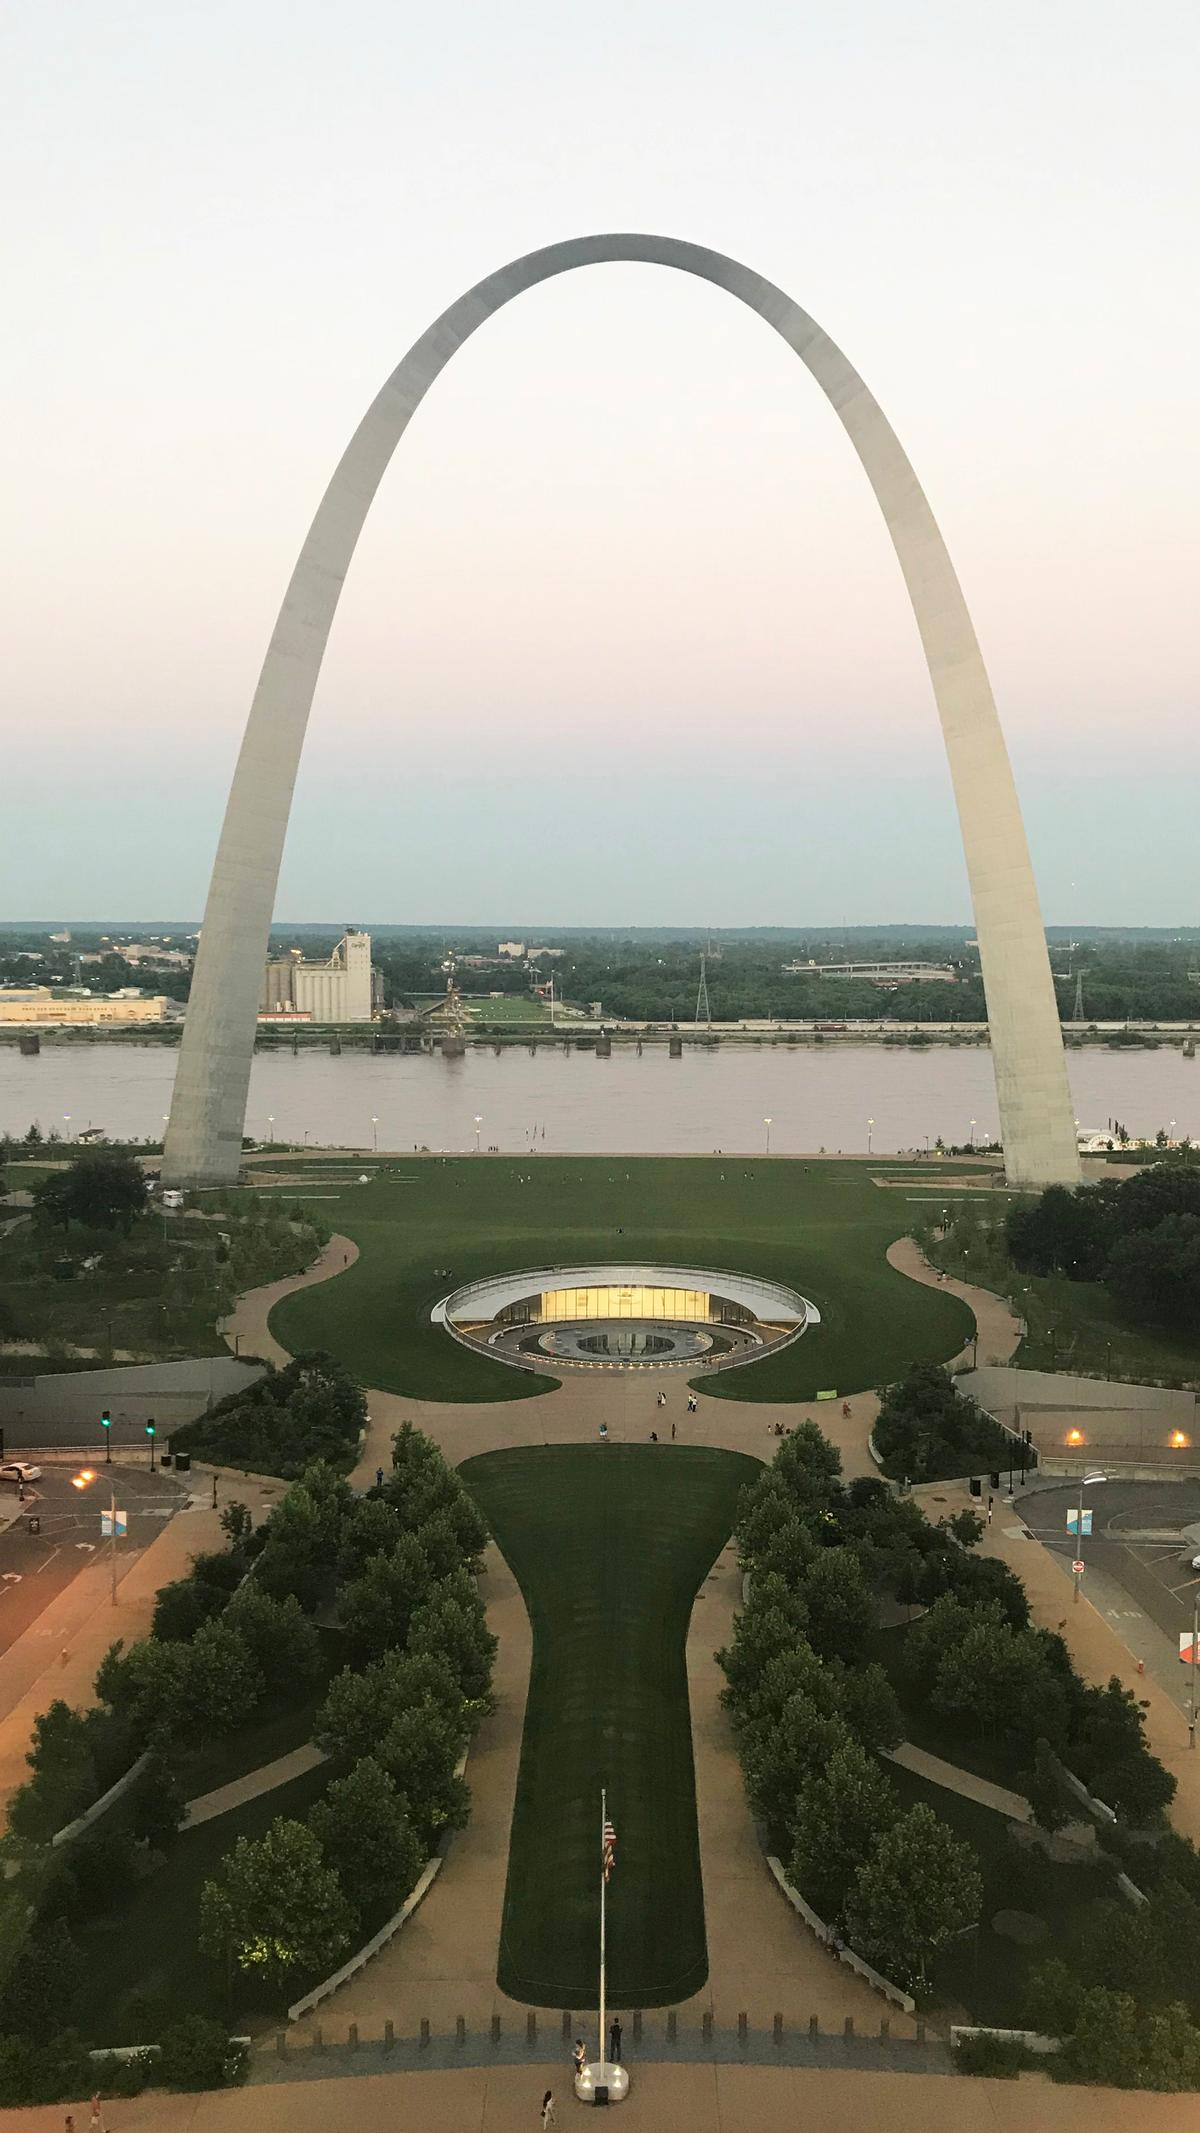 The expanded museum sits in the shadow of the Eero Saarinen-designed arch – the tallest structure of its kind in the world / Cooper Robertson